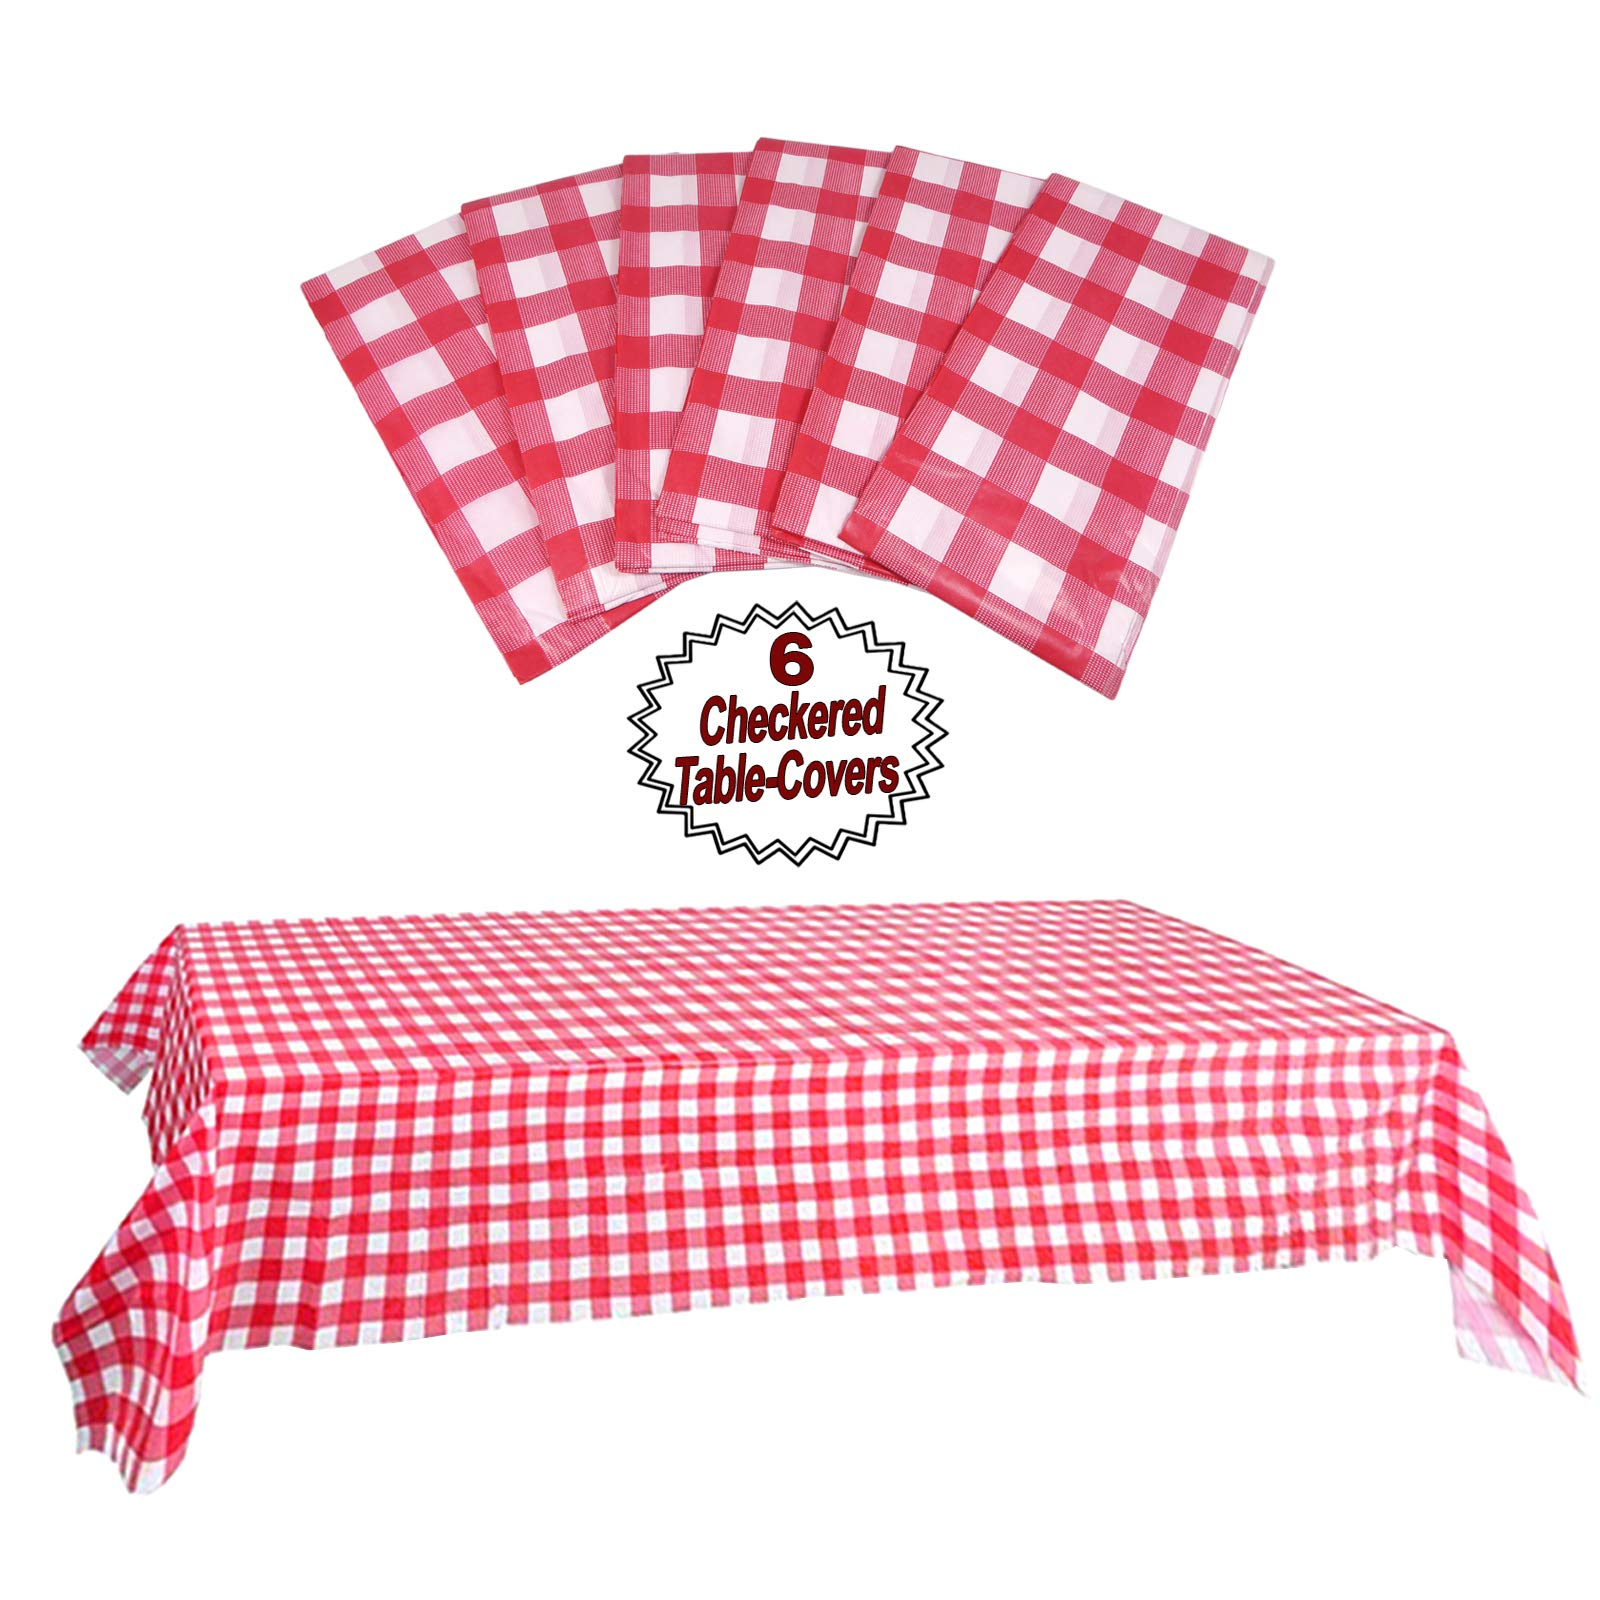 Plastic Checkered Tablecloth | 6 Pcs Pack - 54'' Wide x 108'' Long | Red and White Picnic Disposable Table Cover | Rectangular Gingham Tablecover for Birthdays, Carnivals, Parties | By Anapoliz by Anapoliz (Image #4)